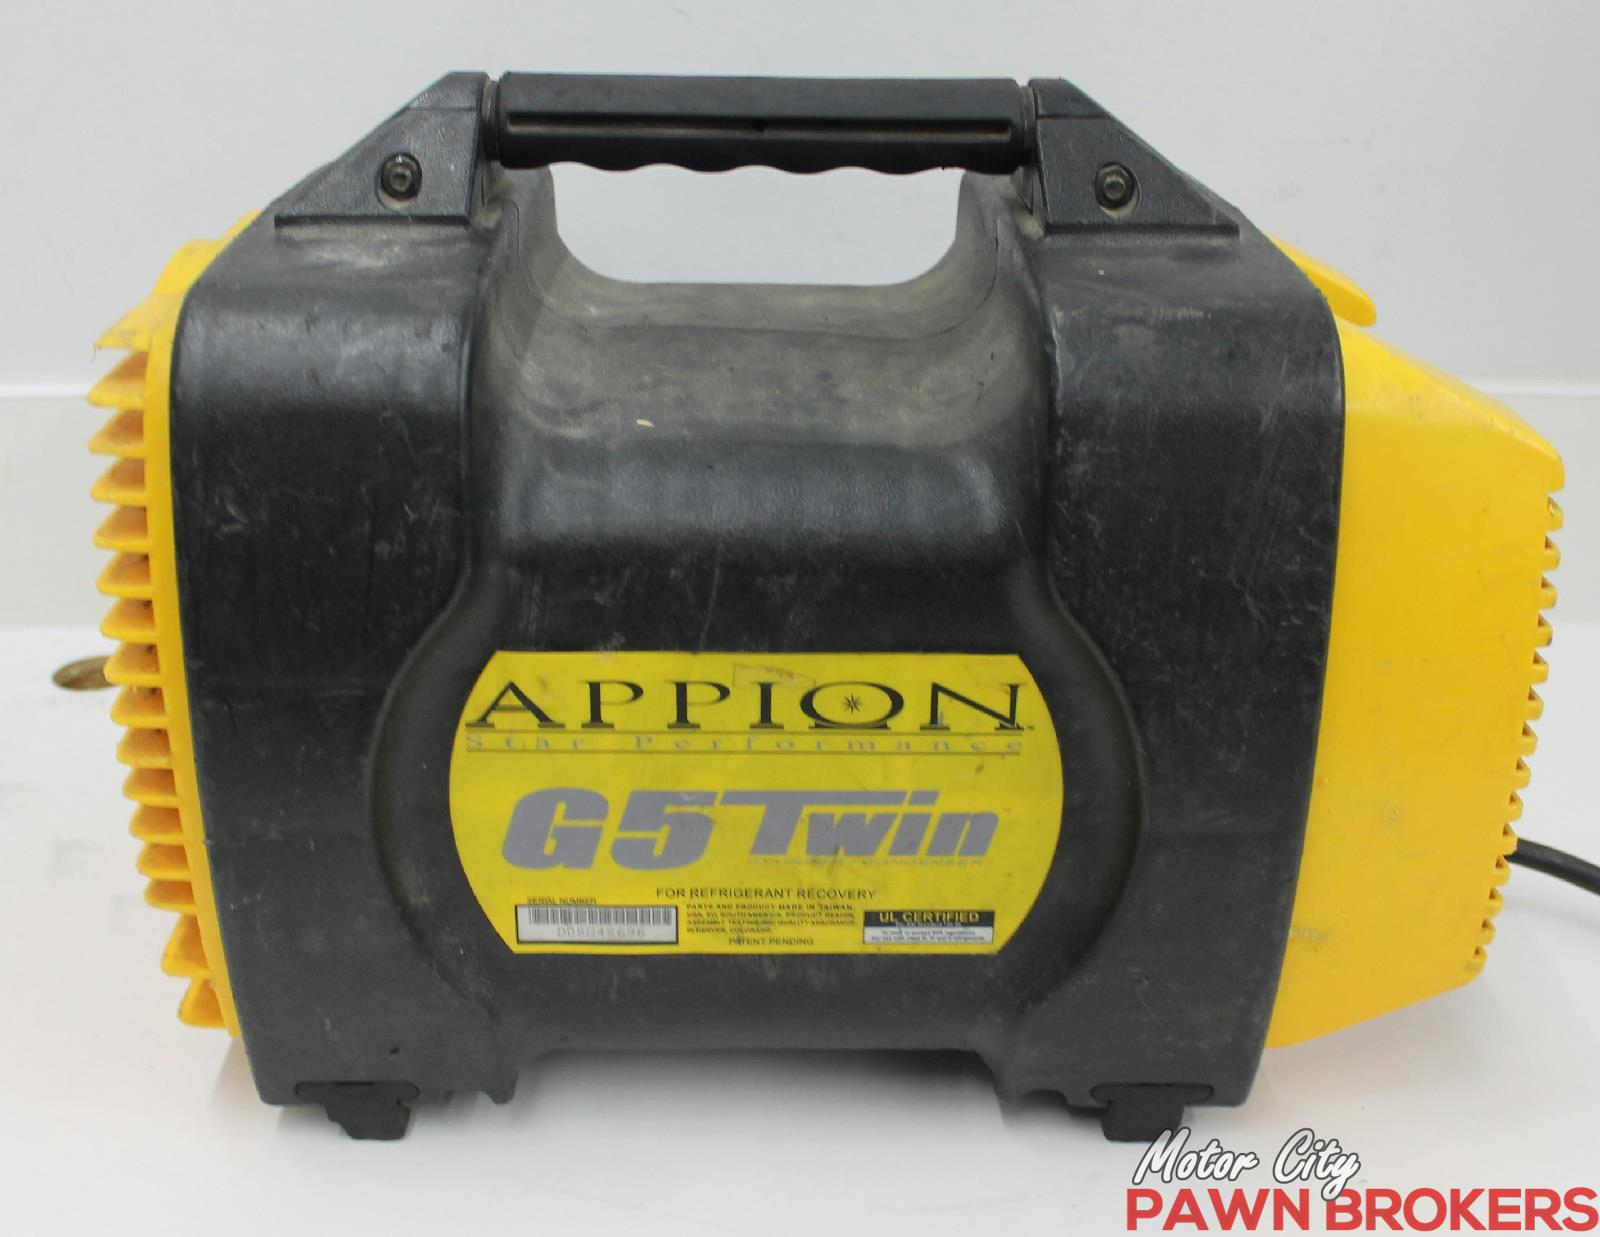 appion recovery machine